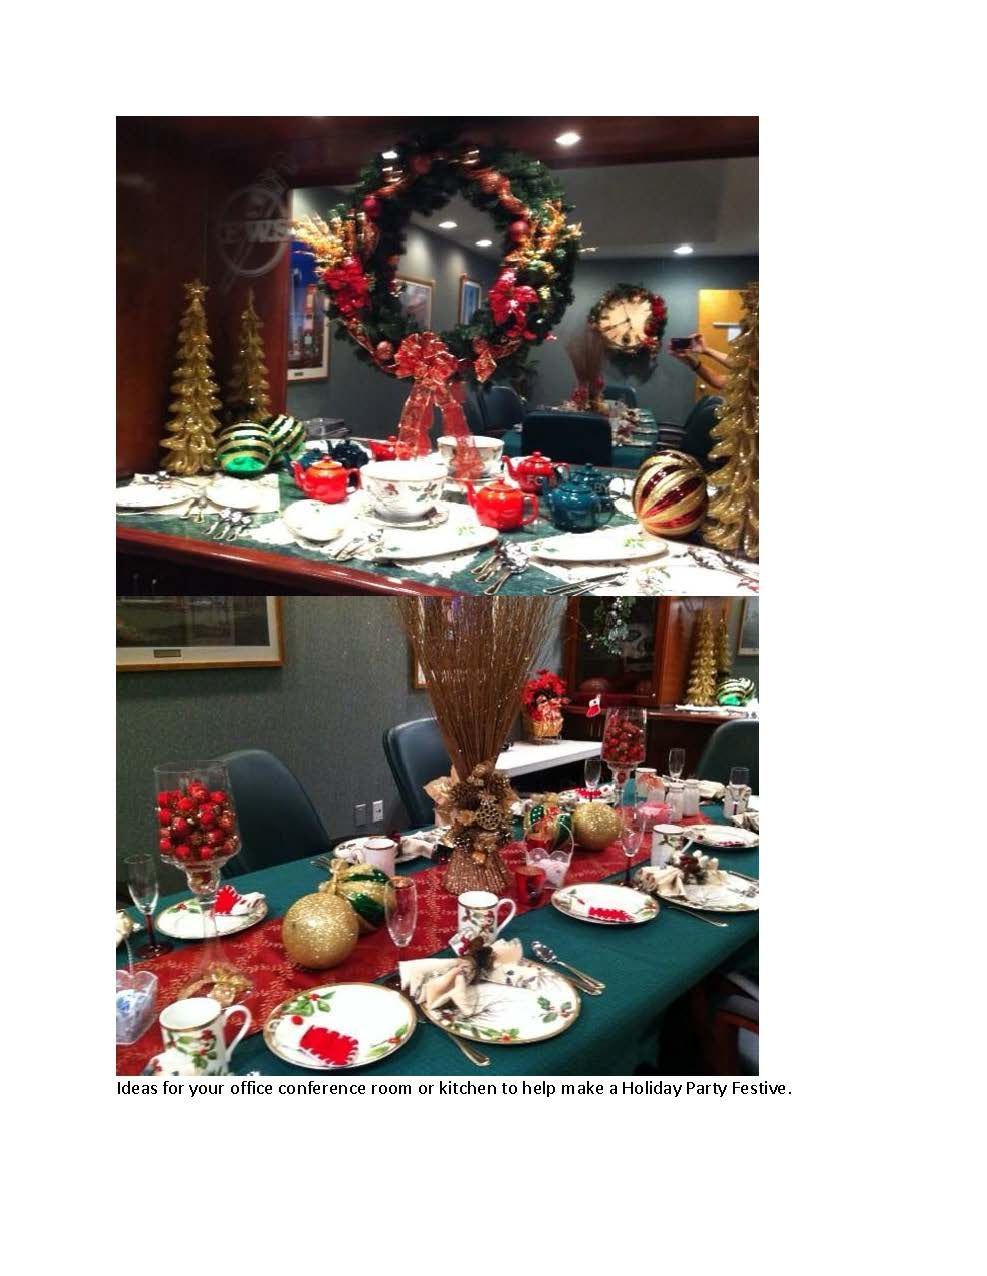 Decorating Ideas > Some Ideas To Turn Your Office Conference Room Or Kitchen  ~ 091232_Christmas Decorations For An Office Party